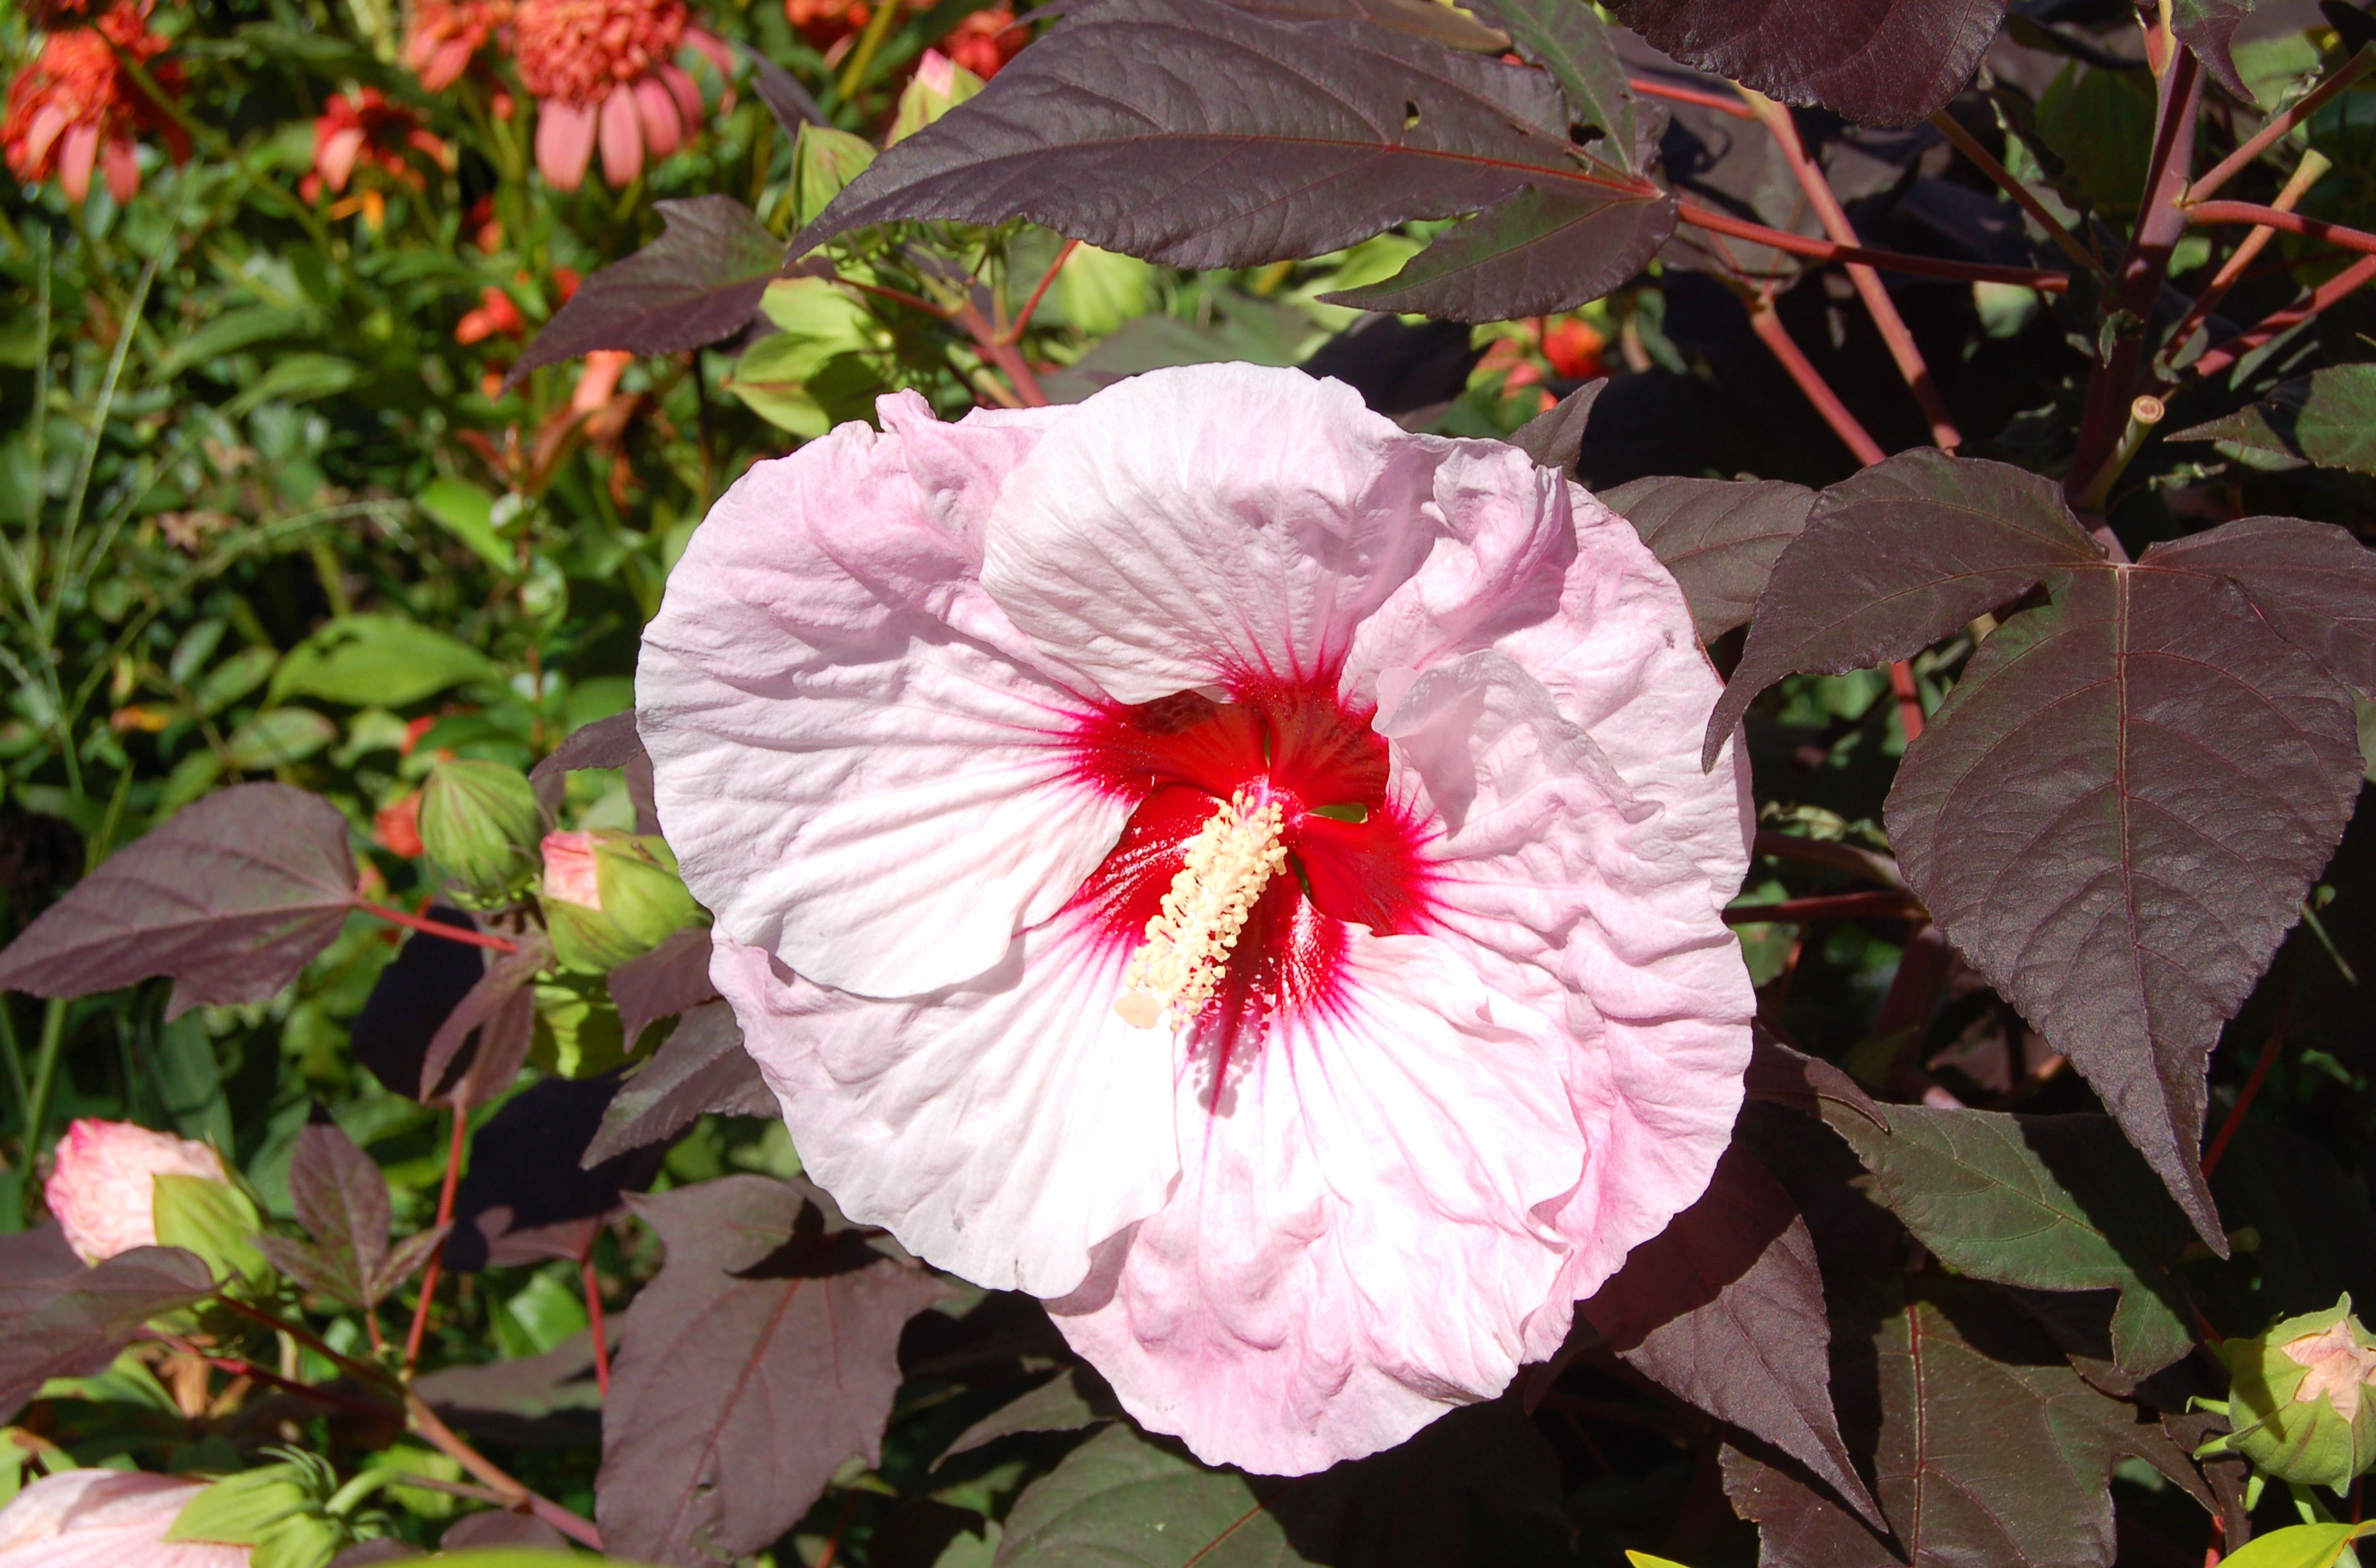 The large bloom and dark-colored leaves of Summerific Perfect Storm hardy hibiscus.